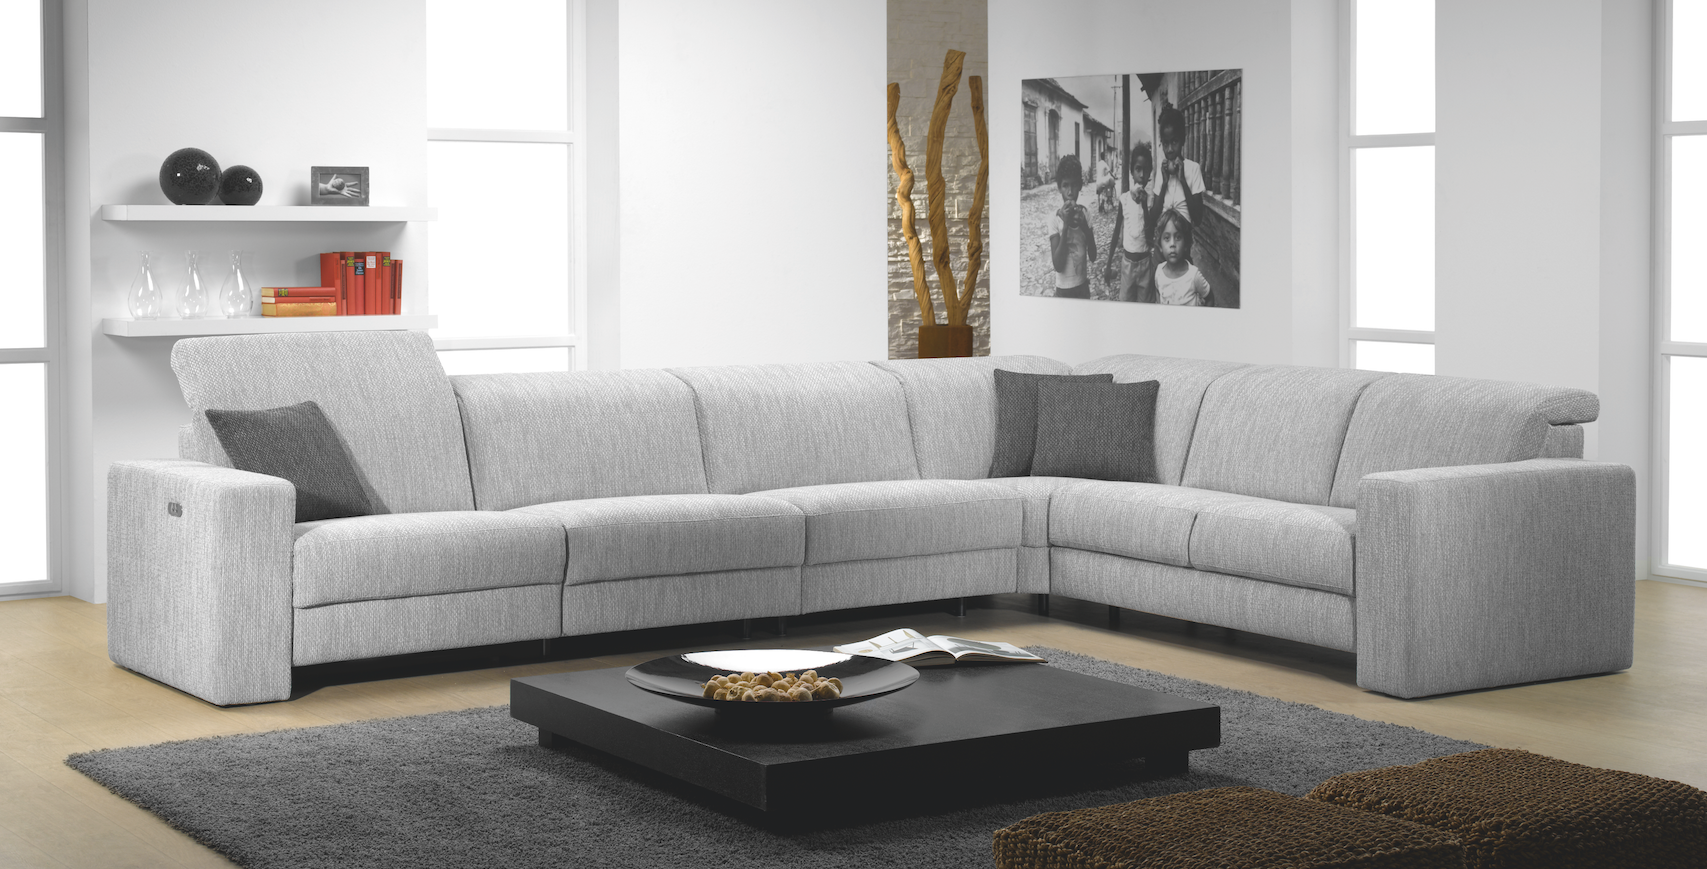 Add Sophisticated Style To Your Living Room With The Clean Lines Of Our  Artemis Sofa From